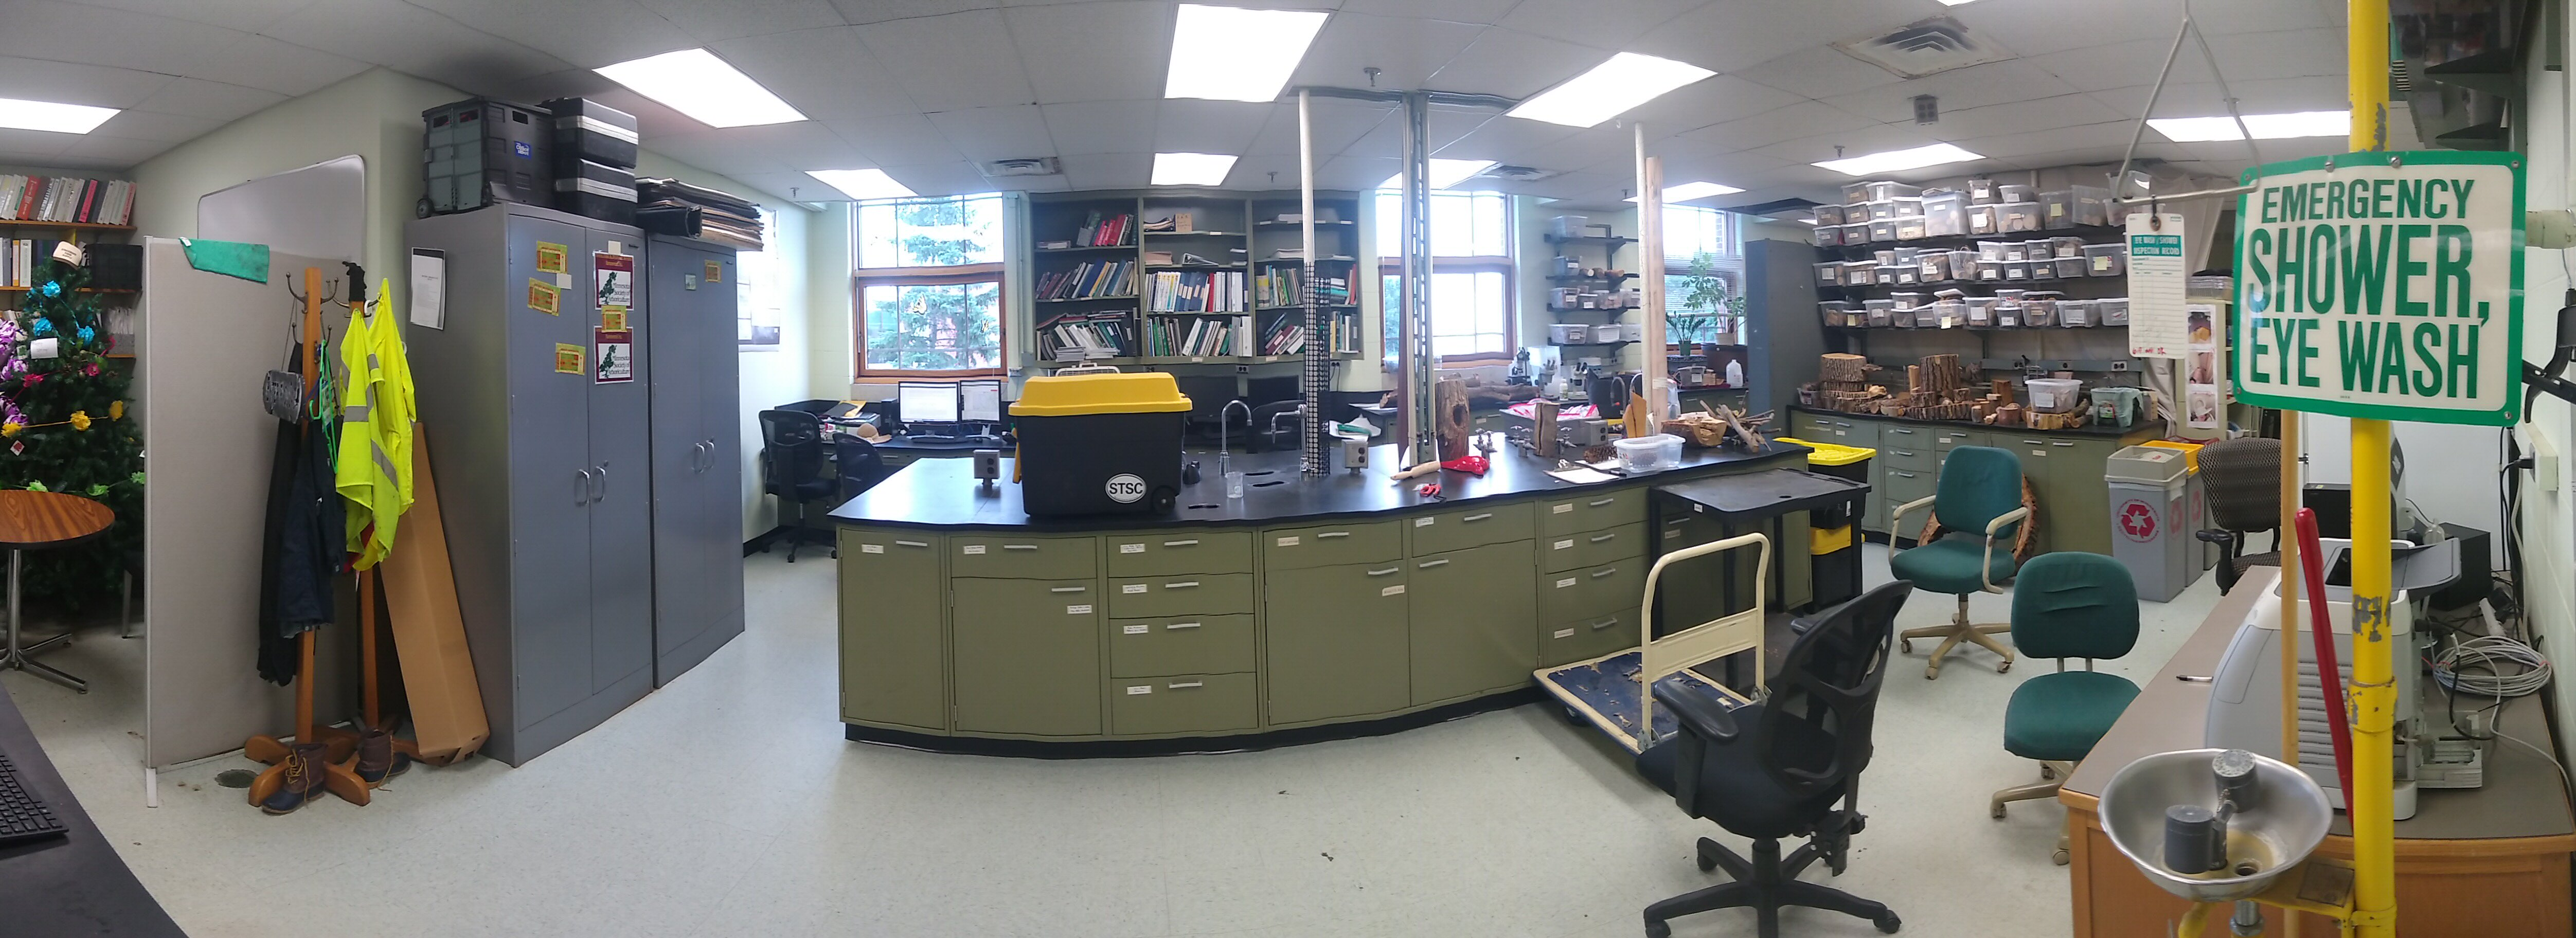 Ufore Lab Panorama